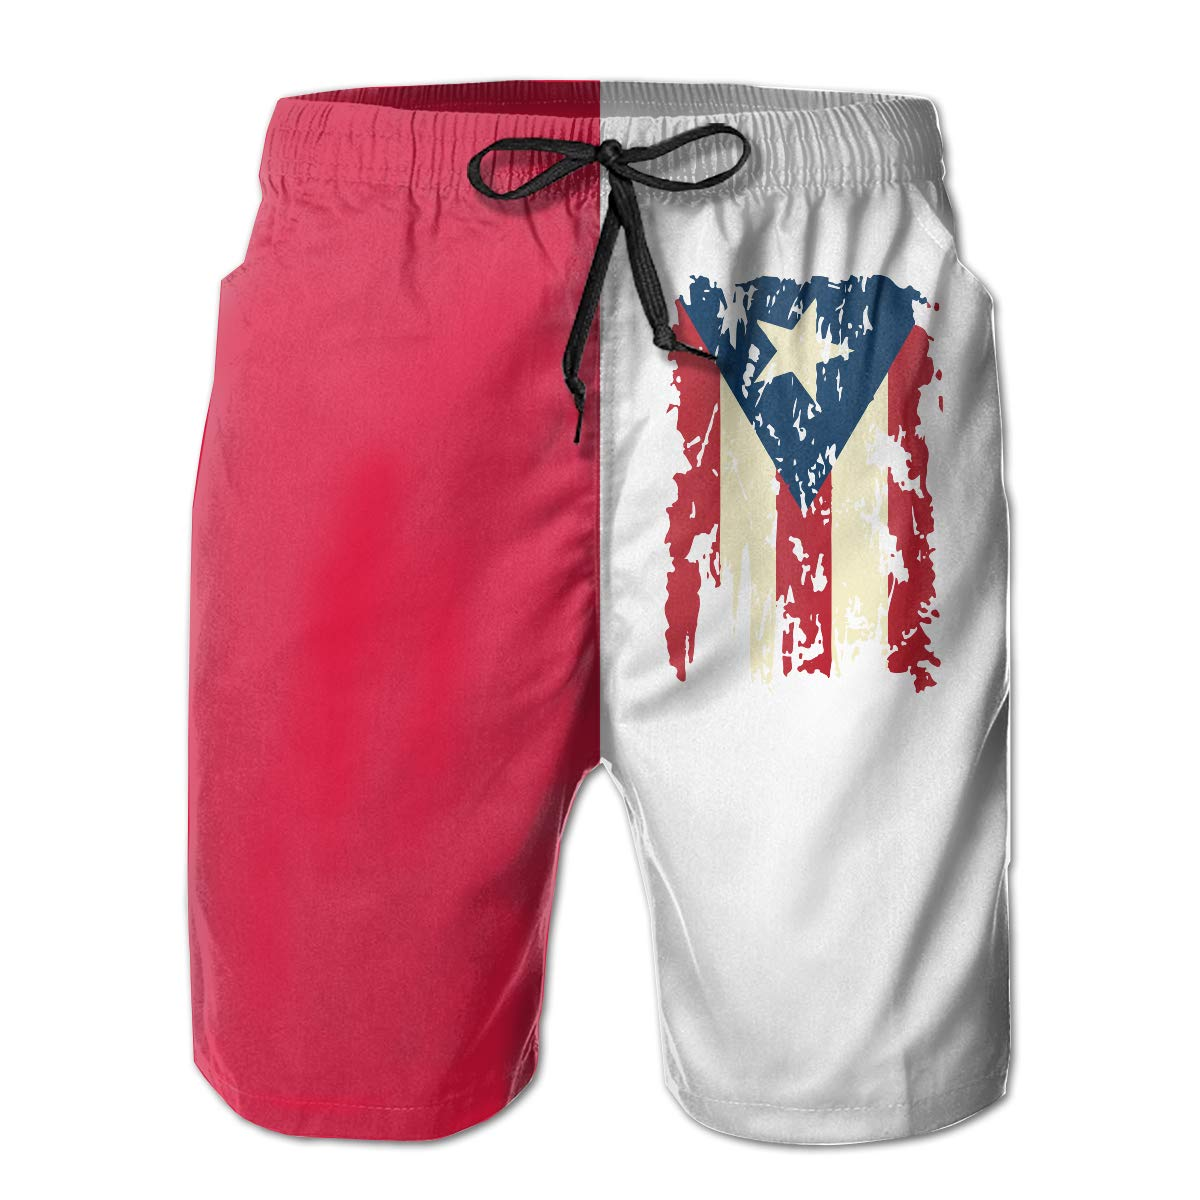 Polyester Vintage Puerto Rico Flag Board Shorts with Pockets Mens Athletic Swim Trunks